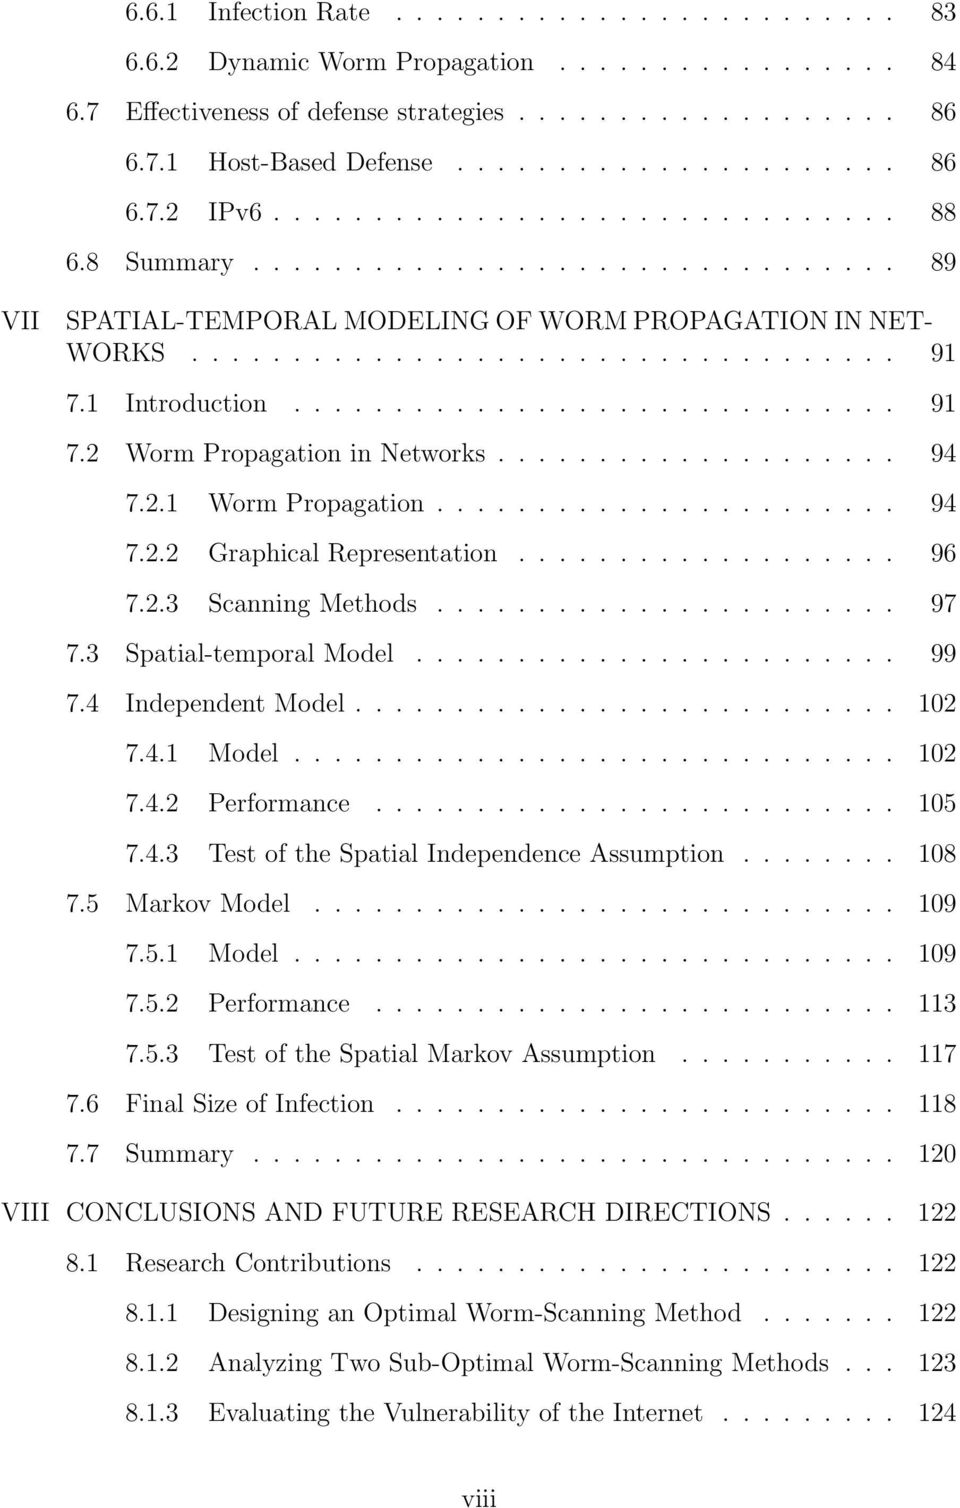 ............................. 91 7.2 Worm Propagation in Networks.................... 94 7.2.1 Worm Propagation....................... 94 7.2.2 Graphical Representation................... 96 7.2.3 Scanning Methods.